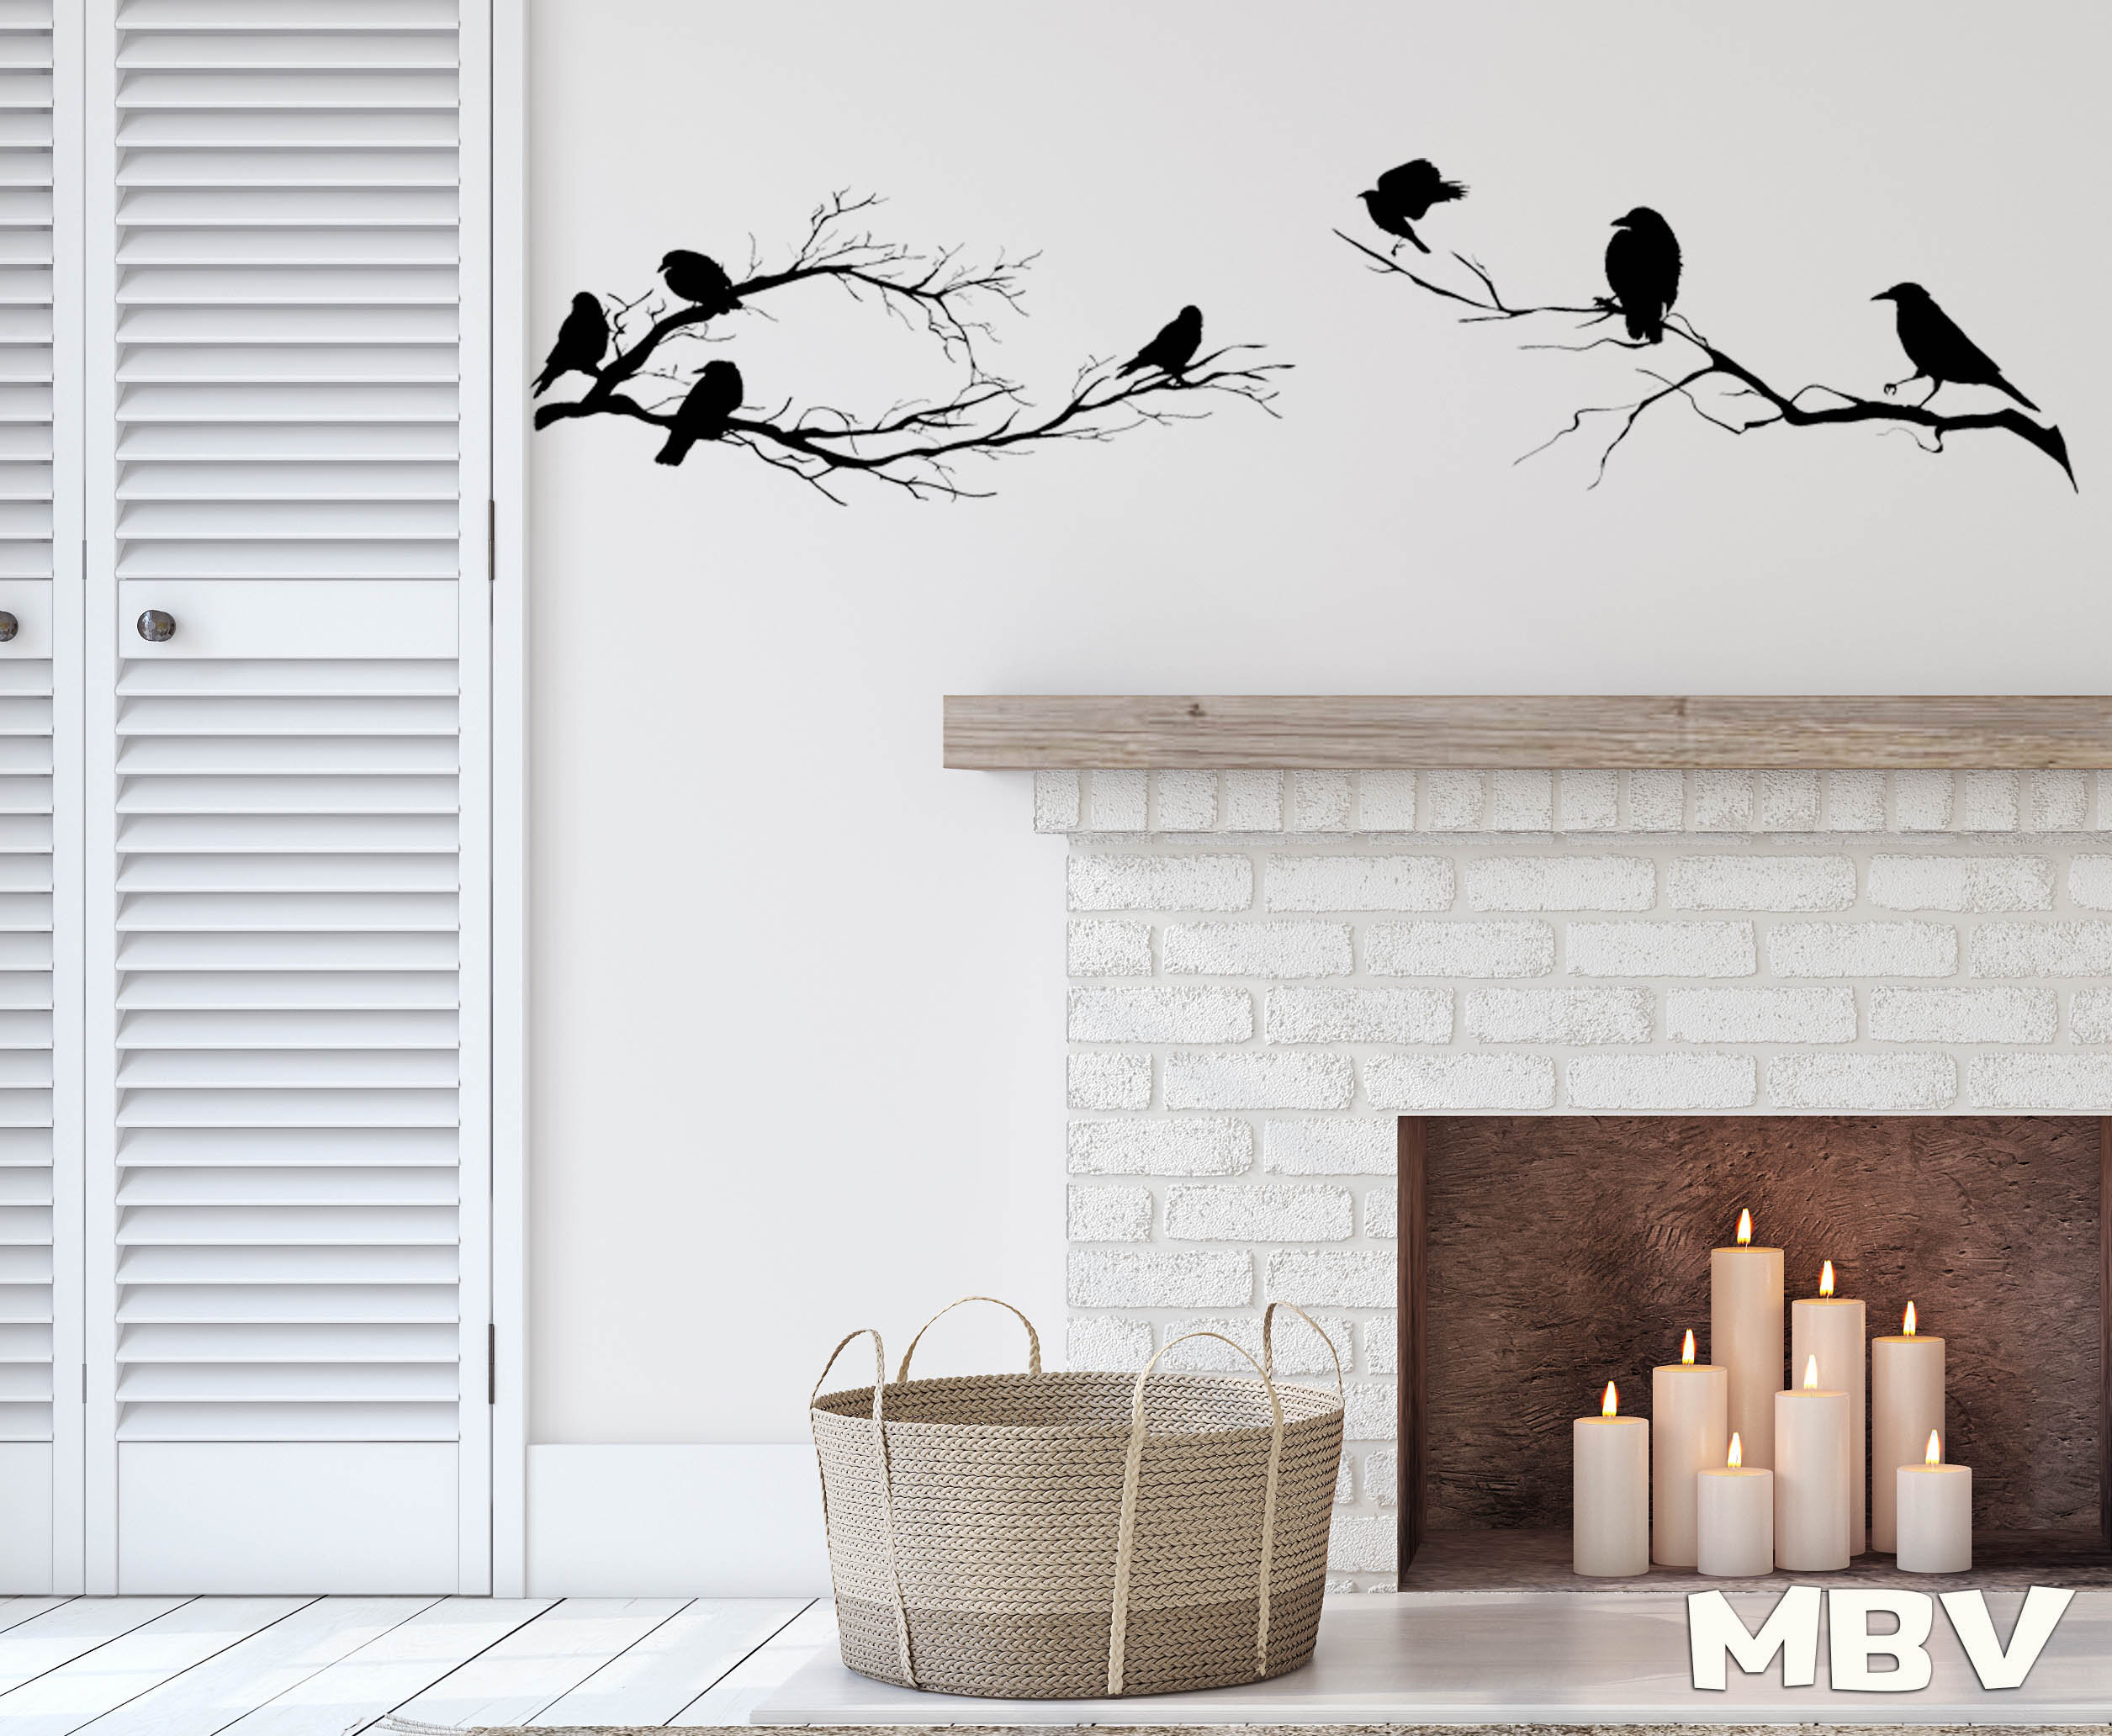 Etsy Throughout Most Current Birds On A Branch Wall Decor (View 10 of 20)